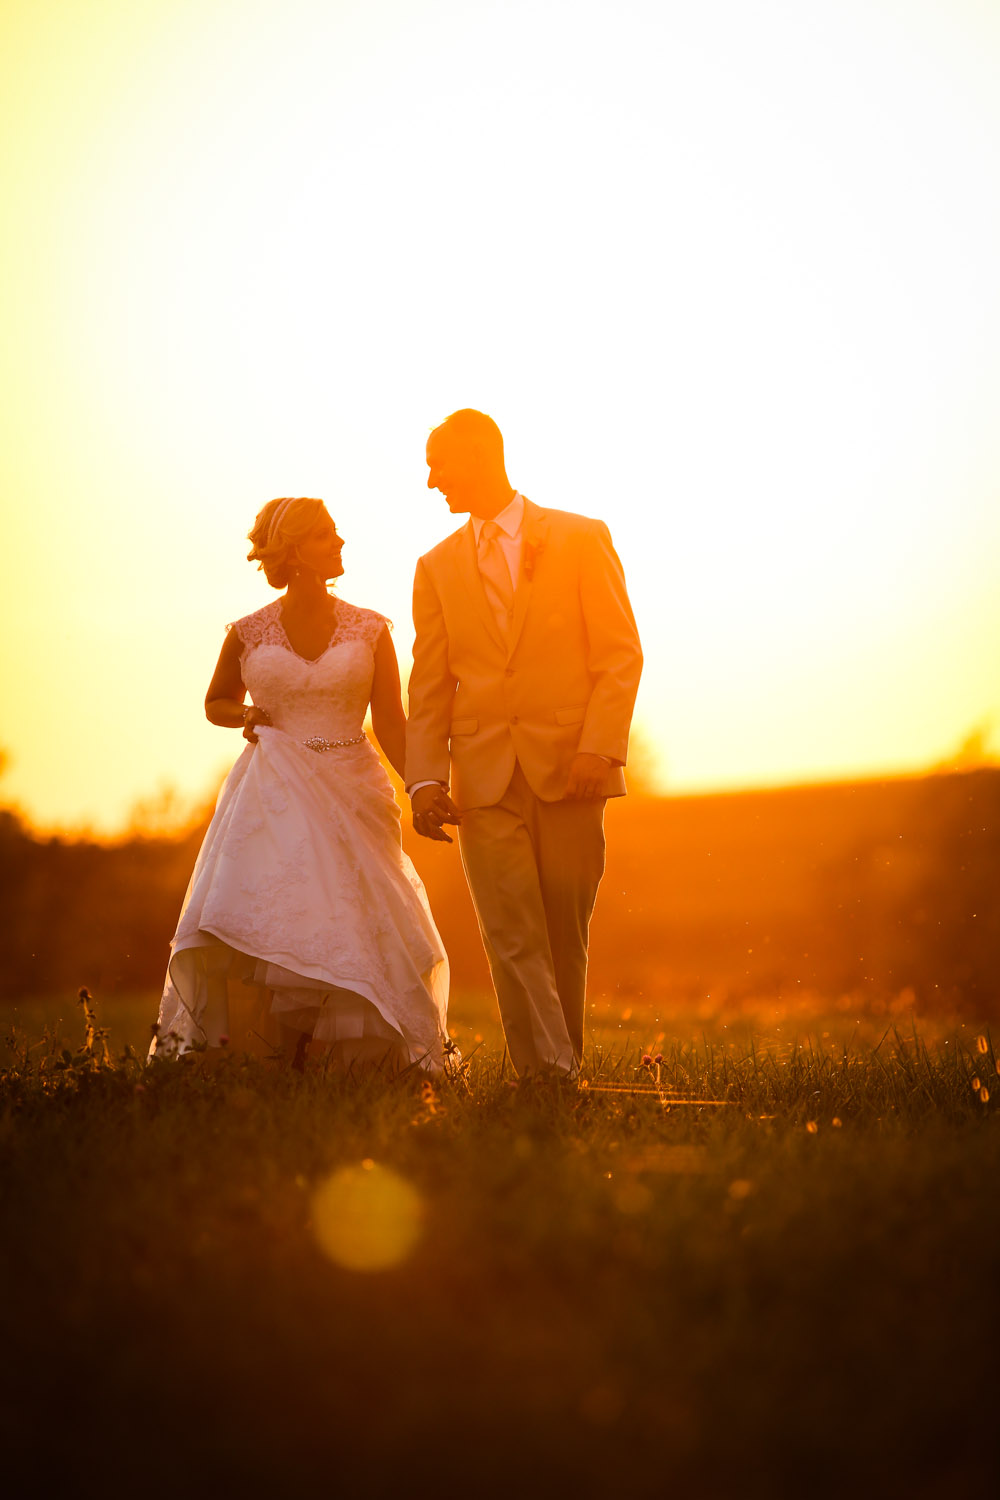 A bride and groom walk in the sunset.